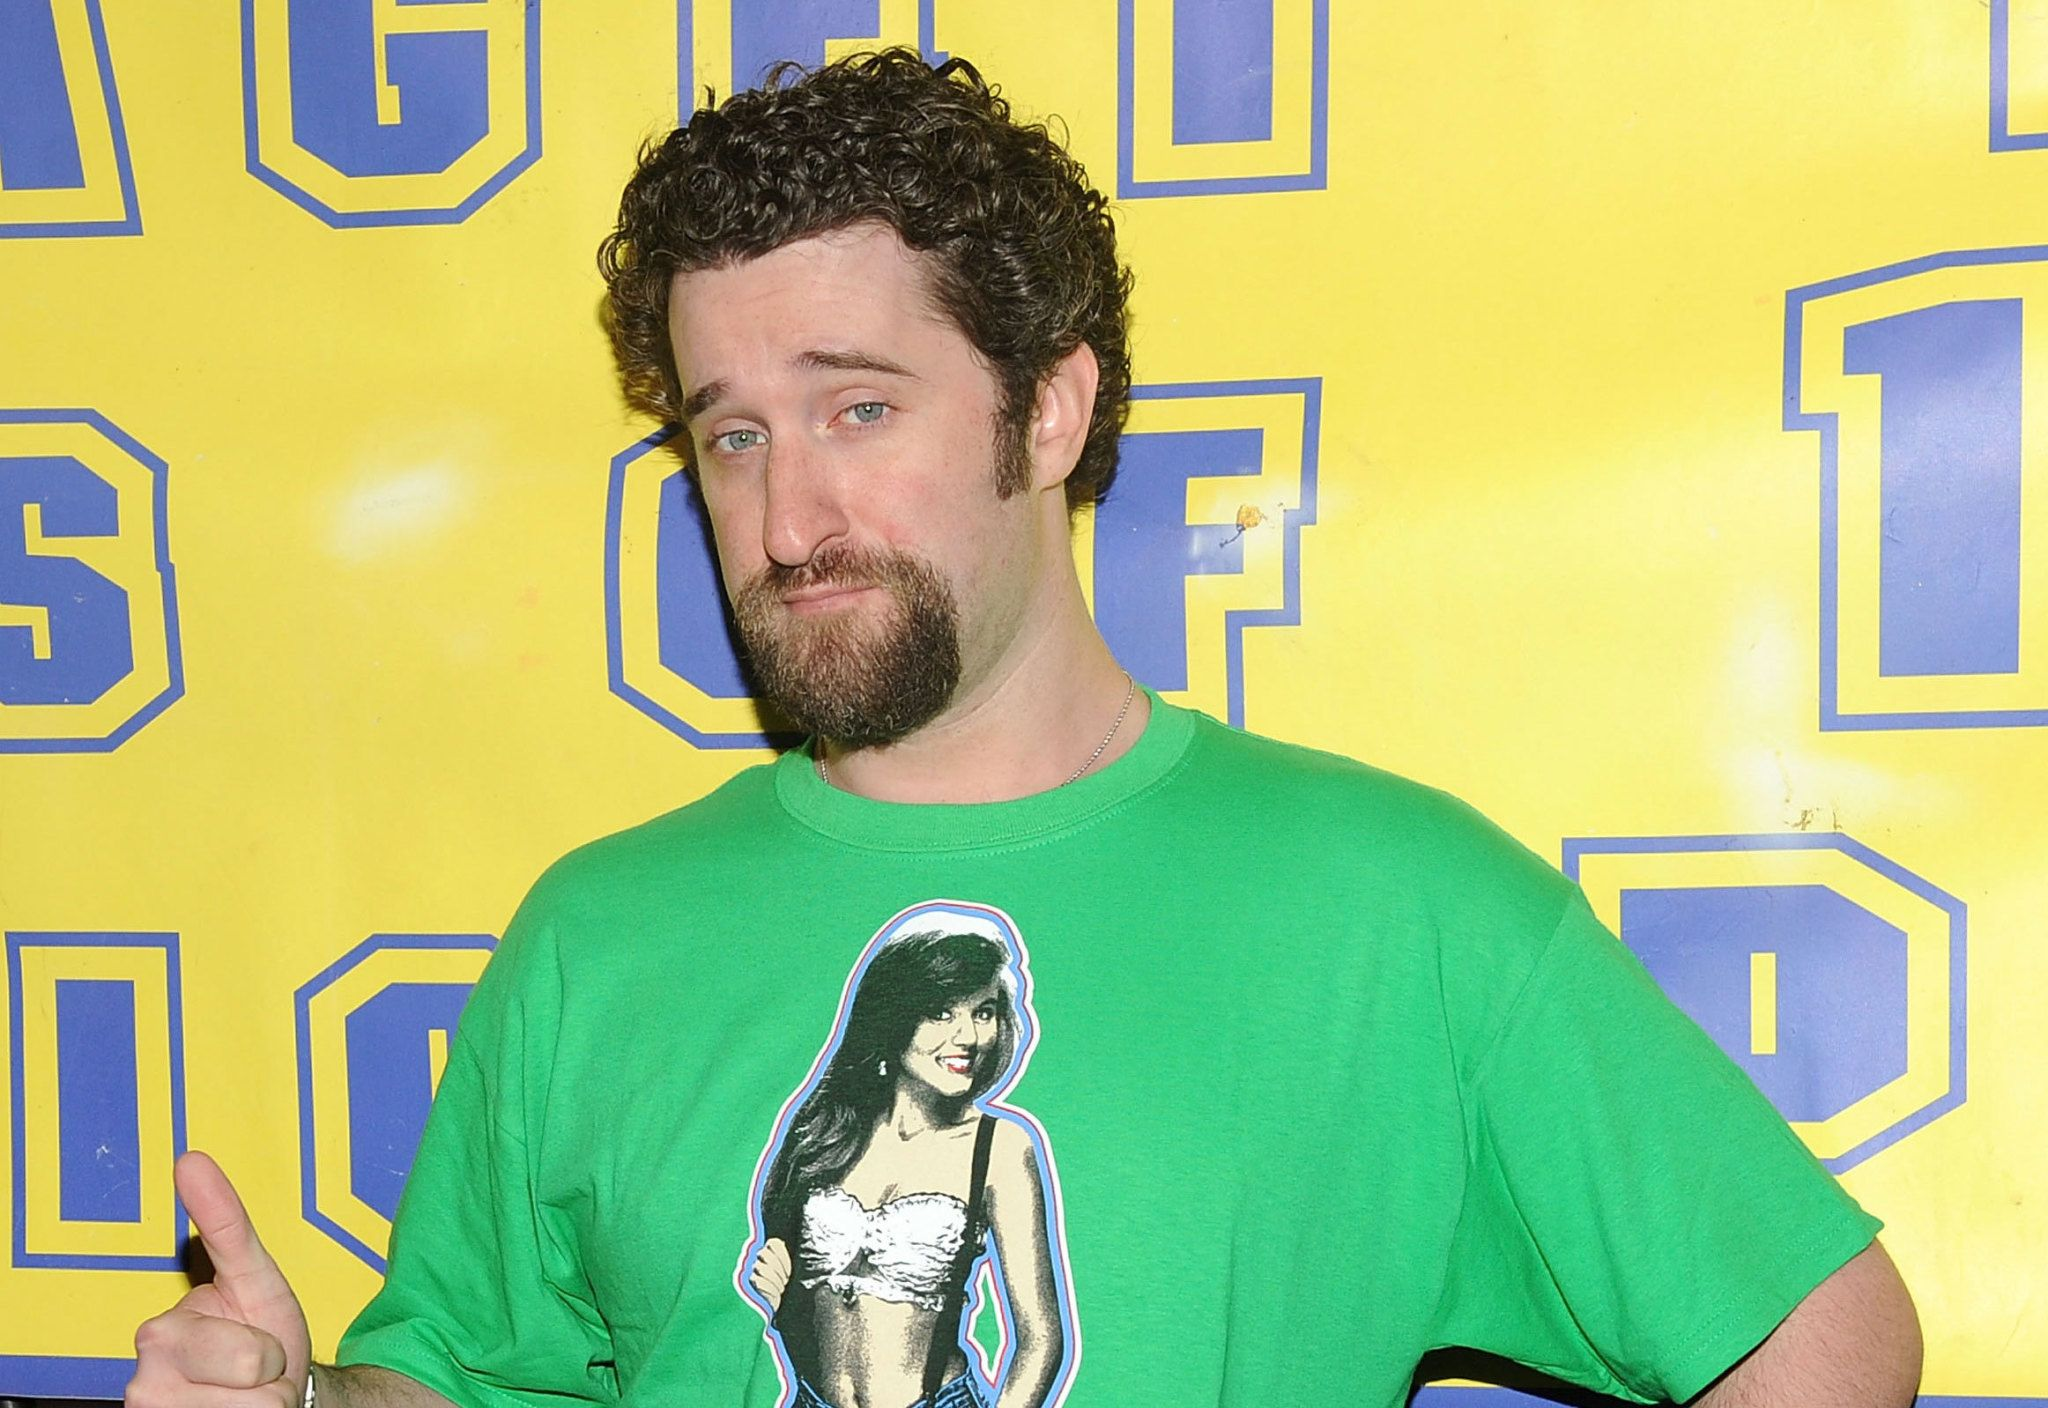 What happened to the women in the screech sex tape